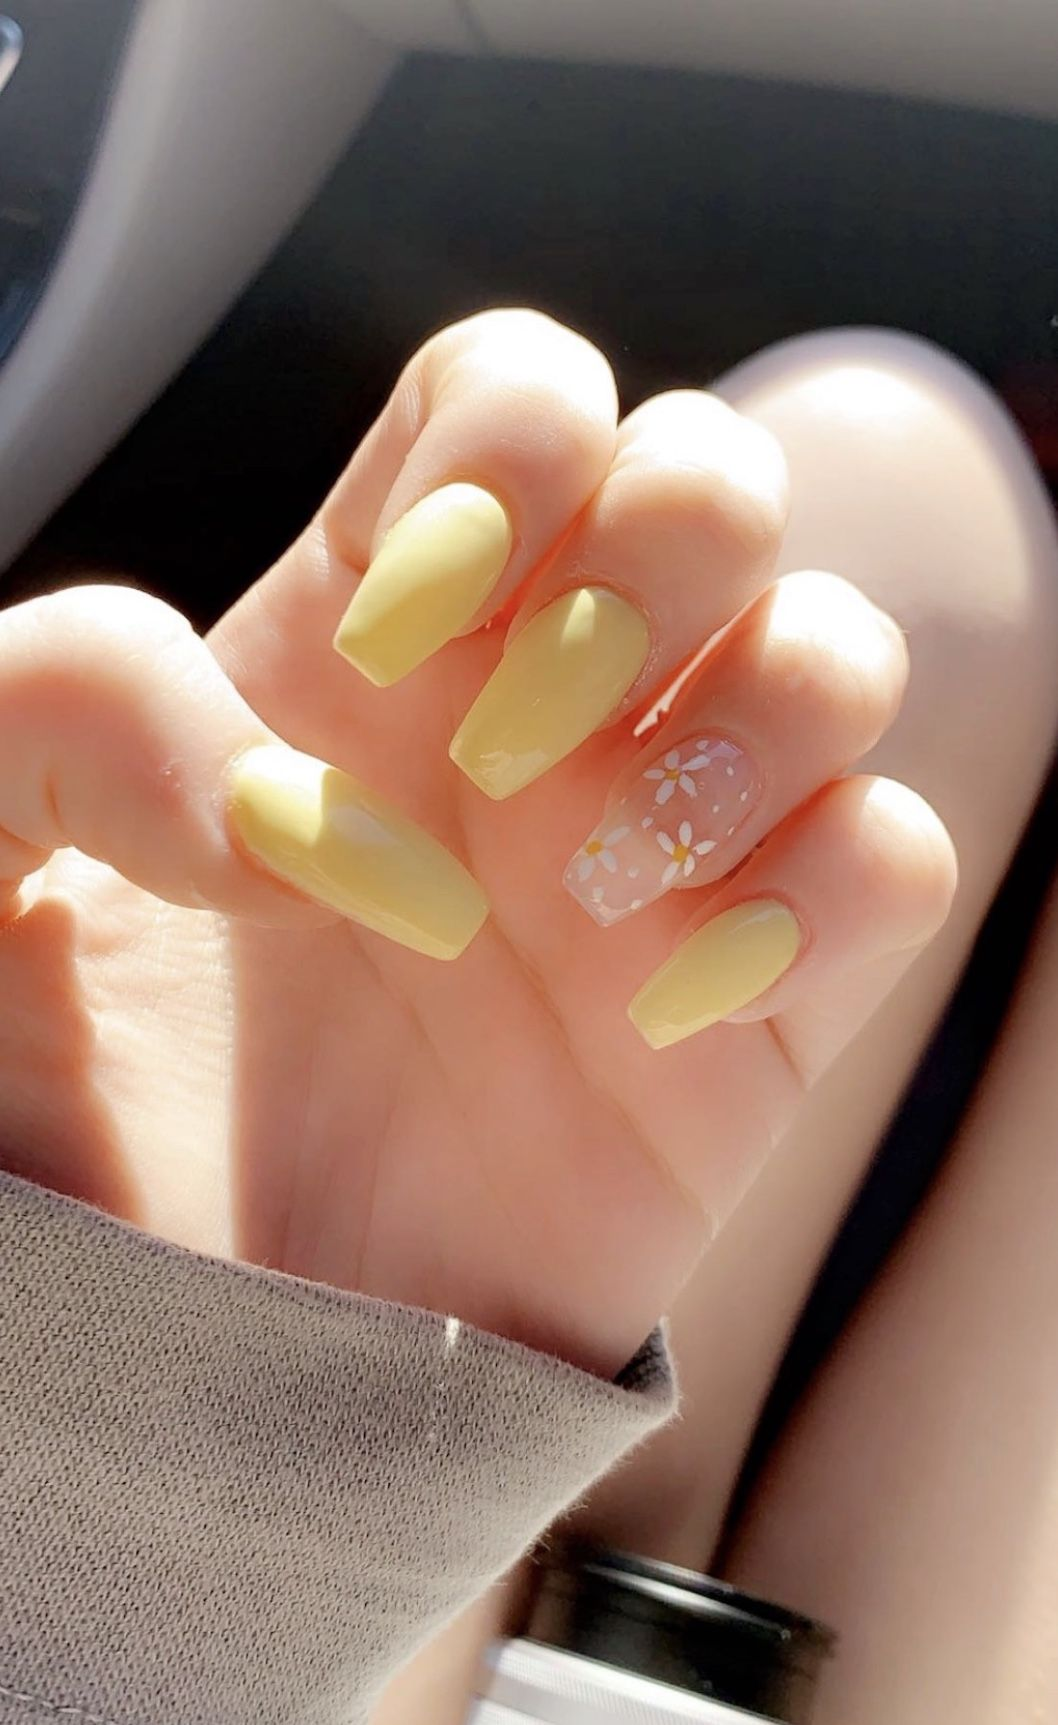 Michelle Jiang Short Acrylic Nails Designs Acrylic Nails Coffin Short Cute Acrylic Nail Designs